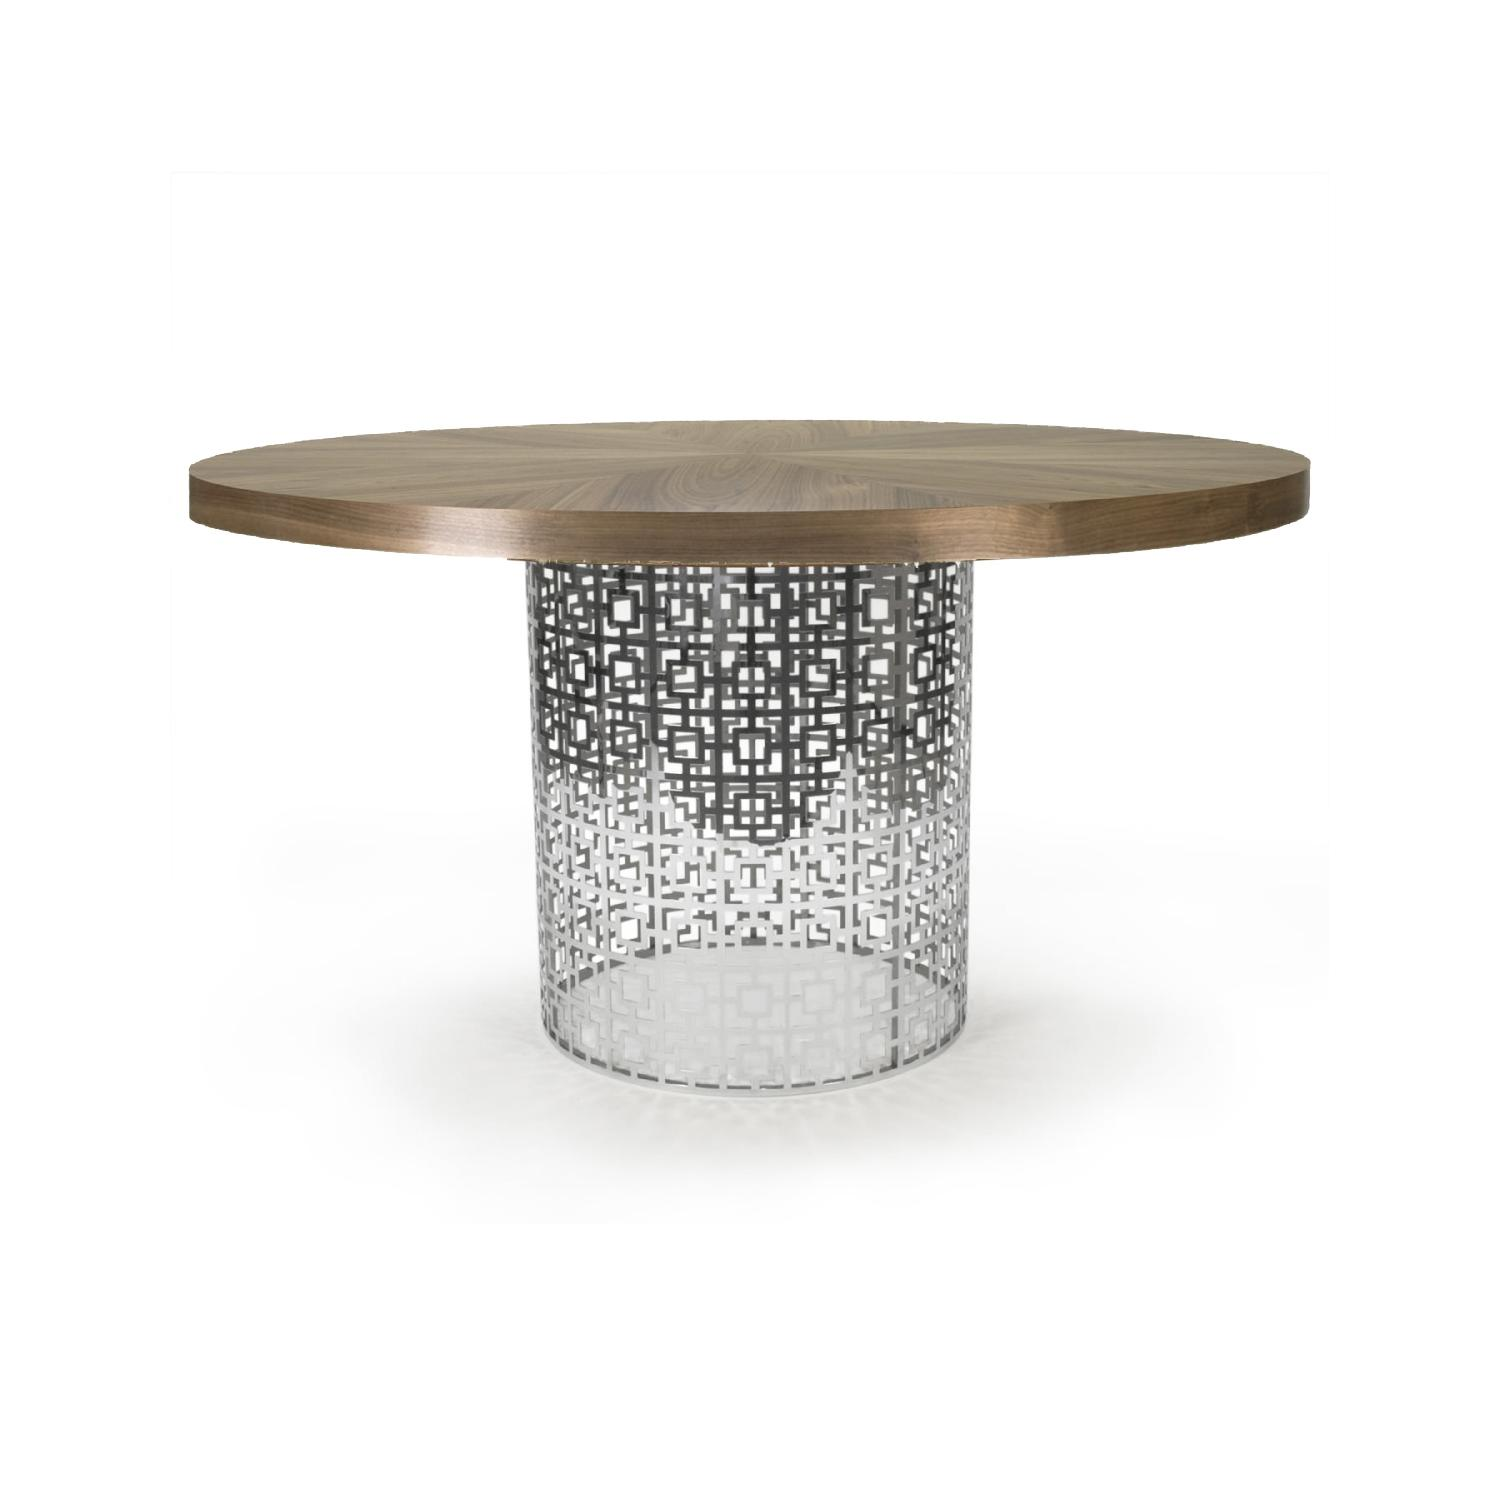 Jonathan Adler Library Table in Nickel w/ Walnut Table Top - image-0